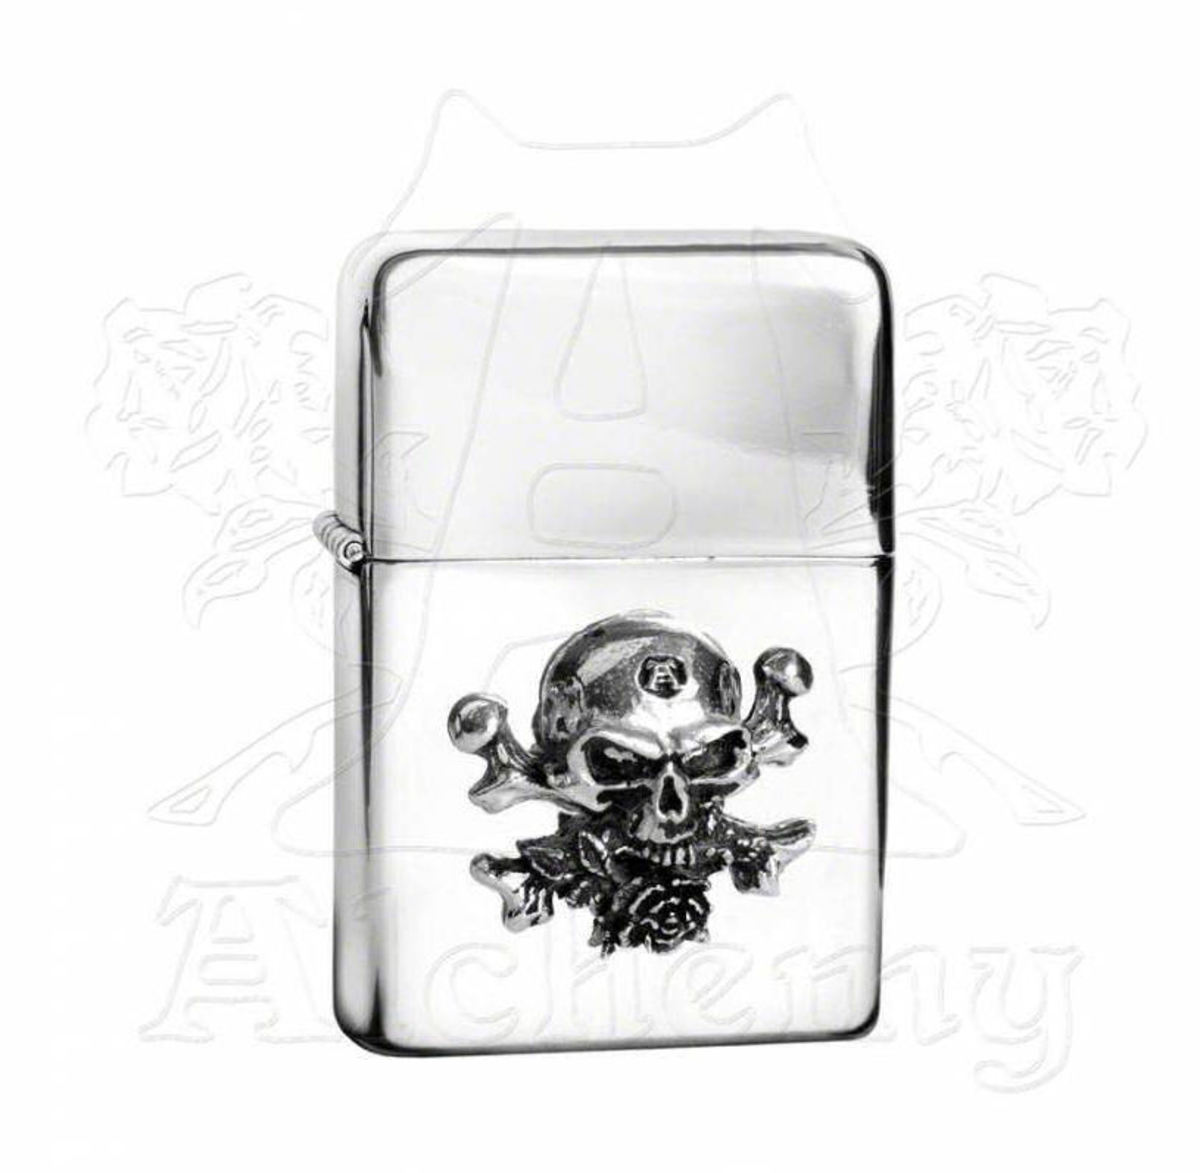 zapalovač Or Philosophy Petrol Lighter AAZ10 - Alchemy Gothic